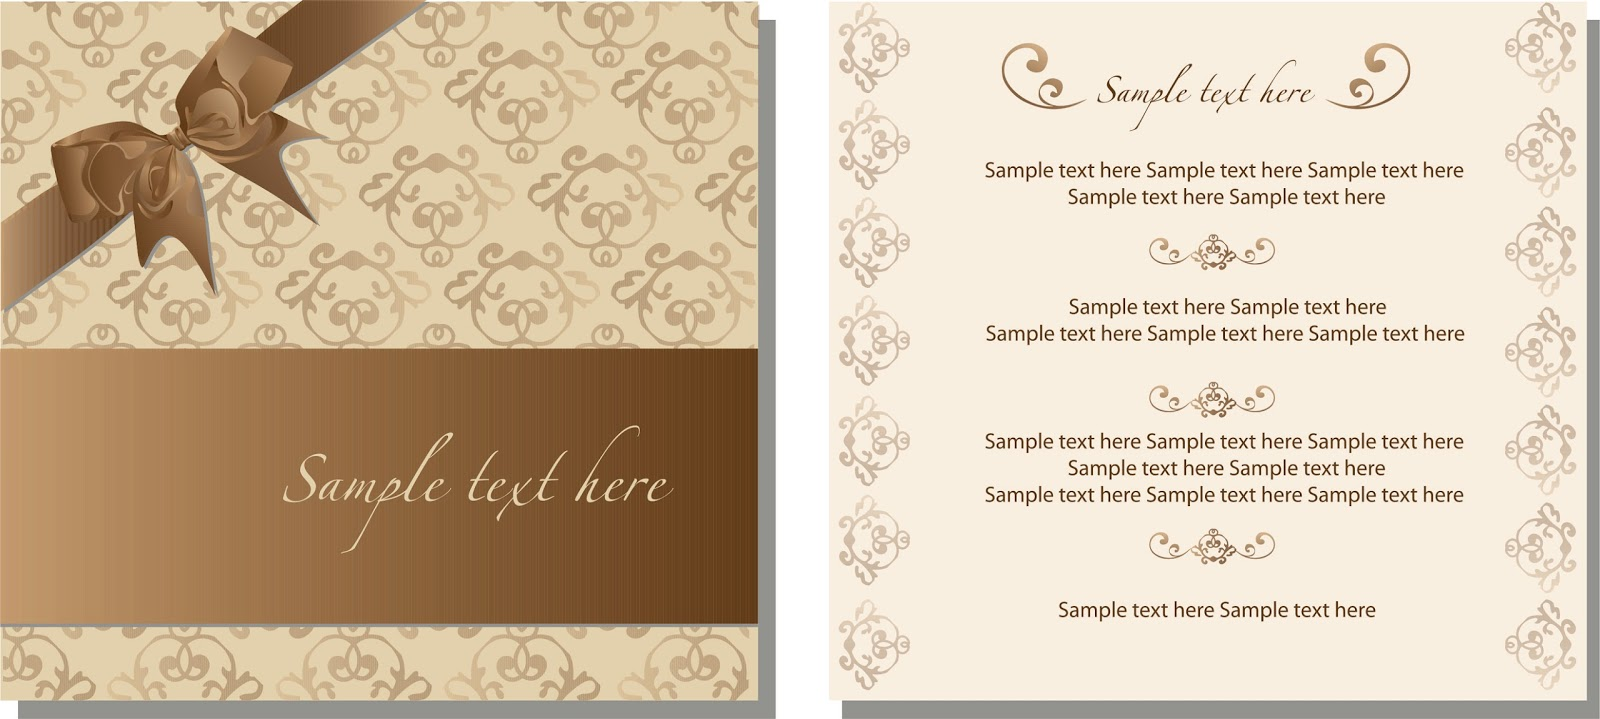 Invitation Card Design A4 A3